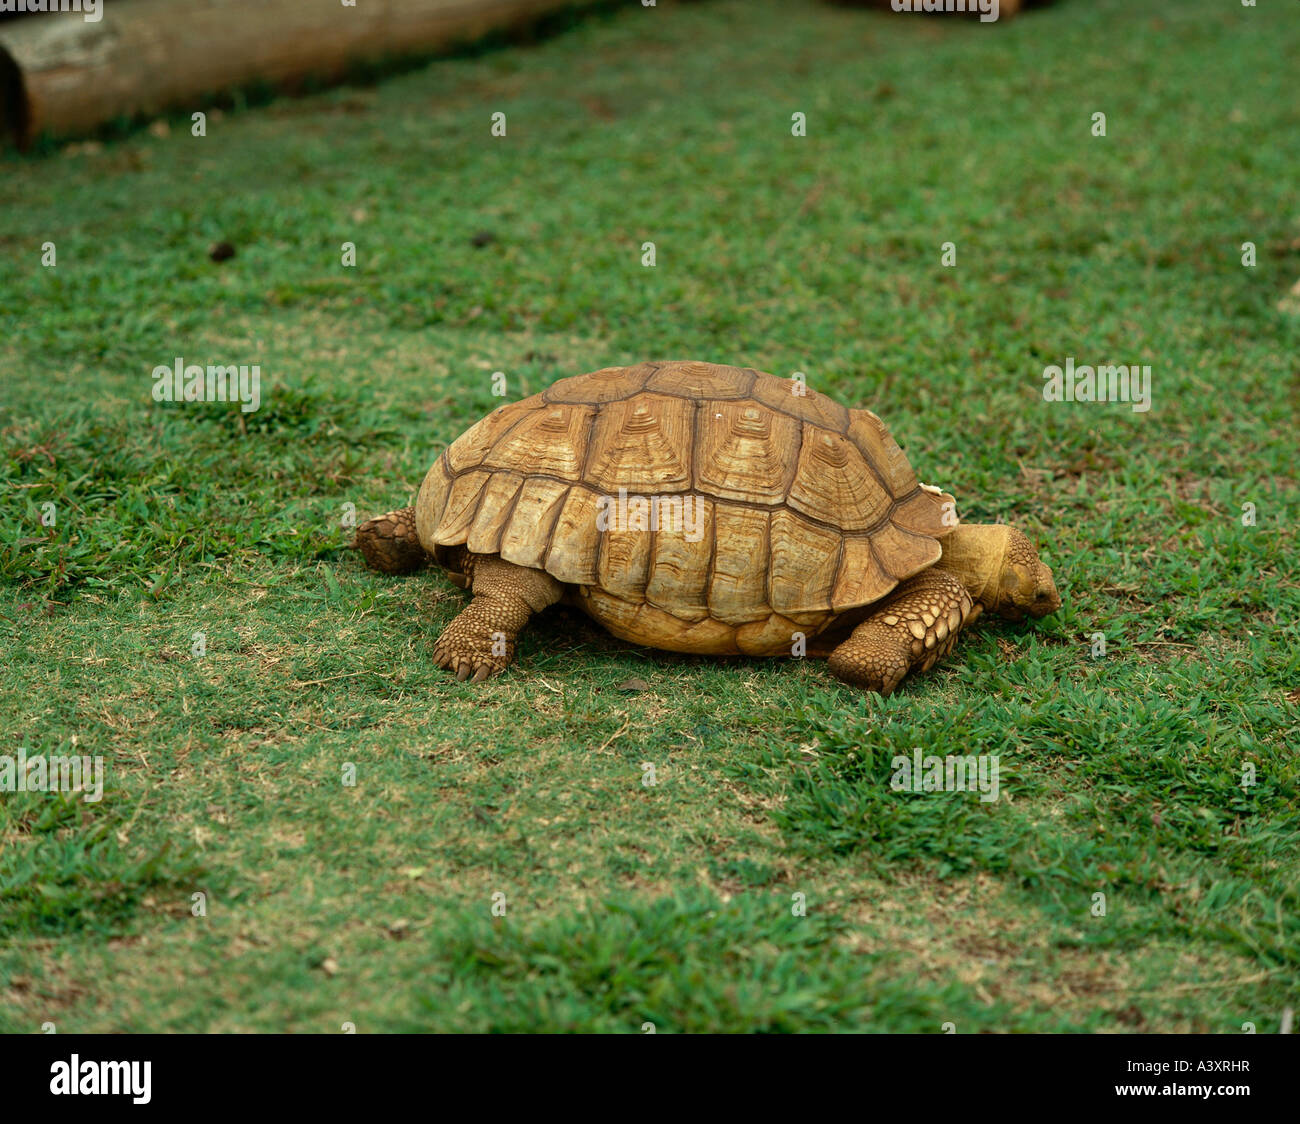 Full Grown Greek Tortoise